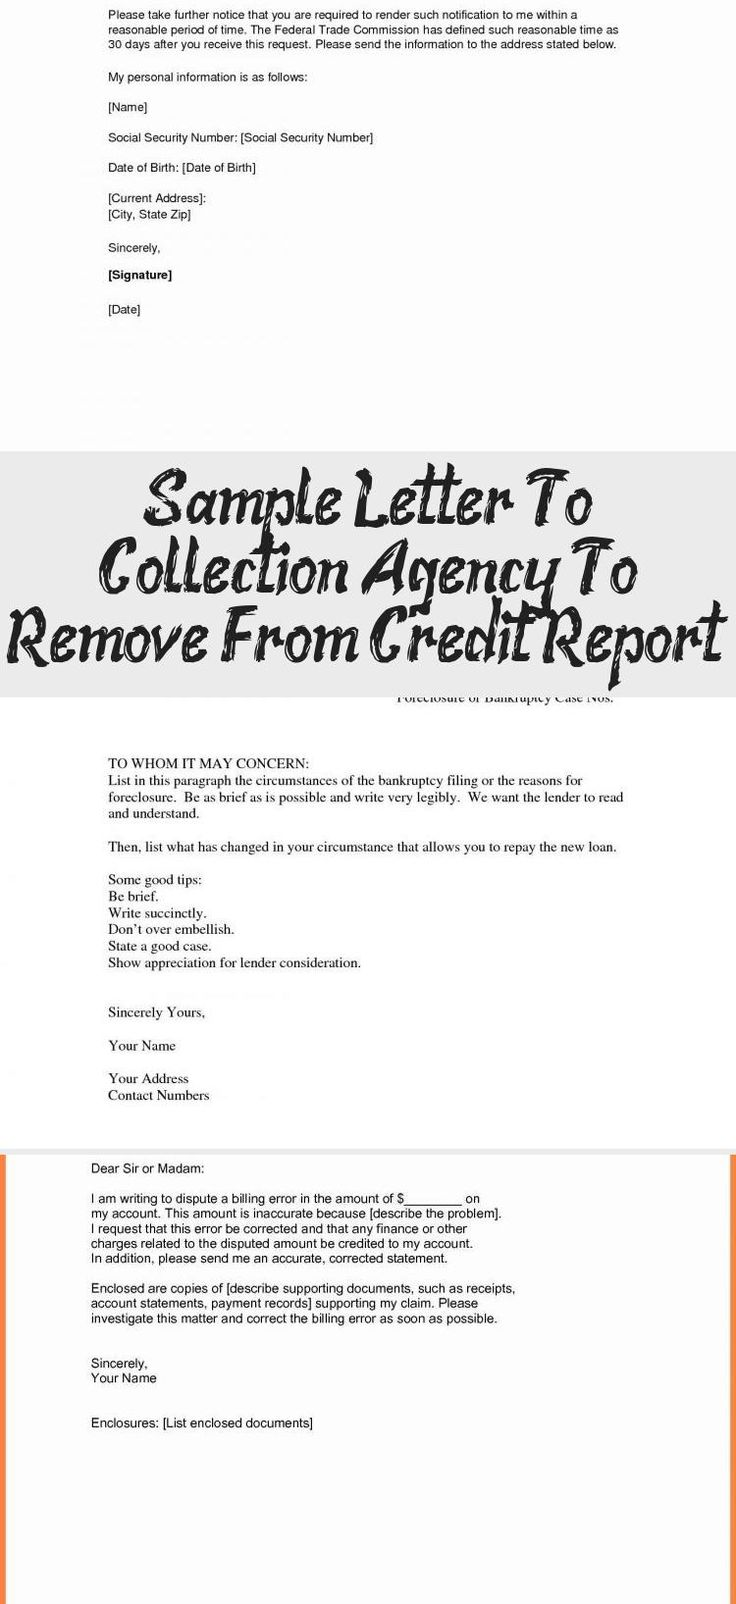 49+ Second dispute letter to collection agency trends